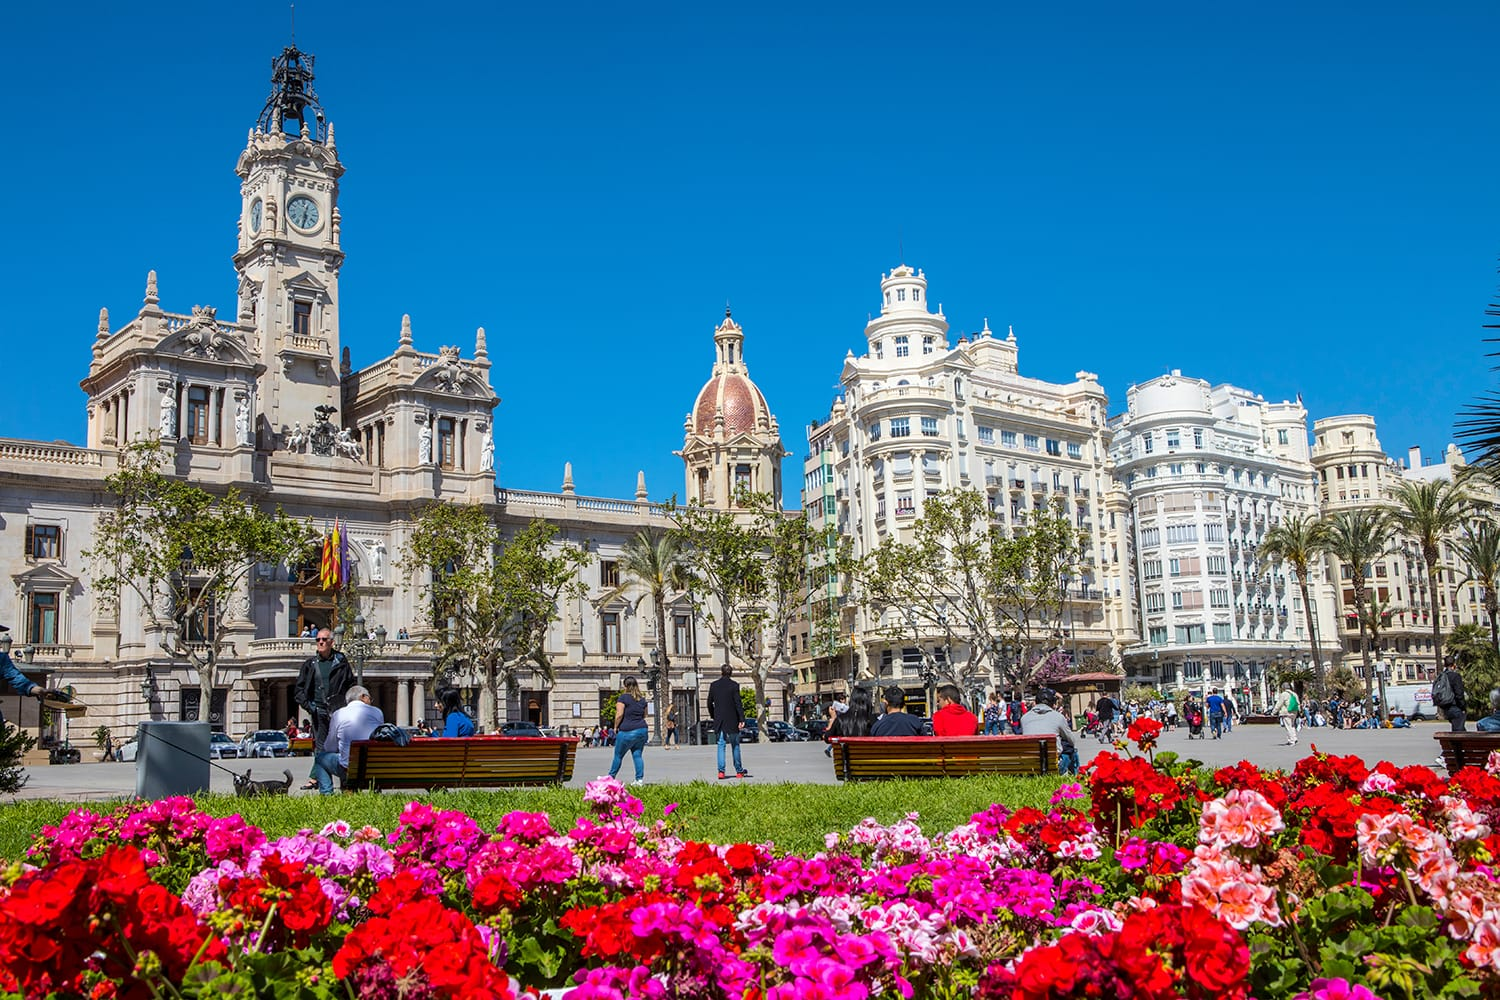 A view of the Town Hall Square, also known as Placa de l'Ajuntament, in the city of Valencia, Spain.